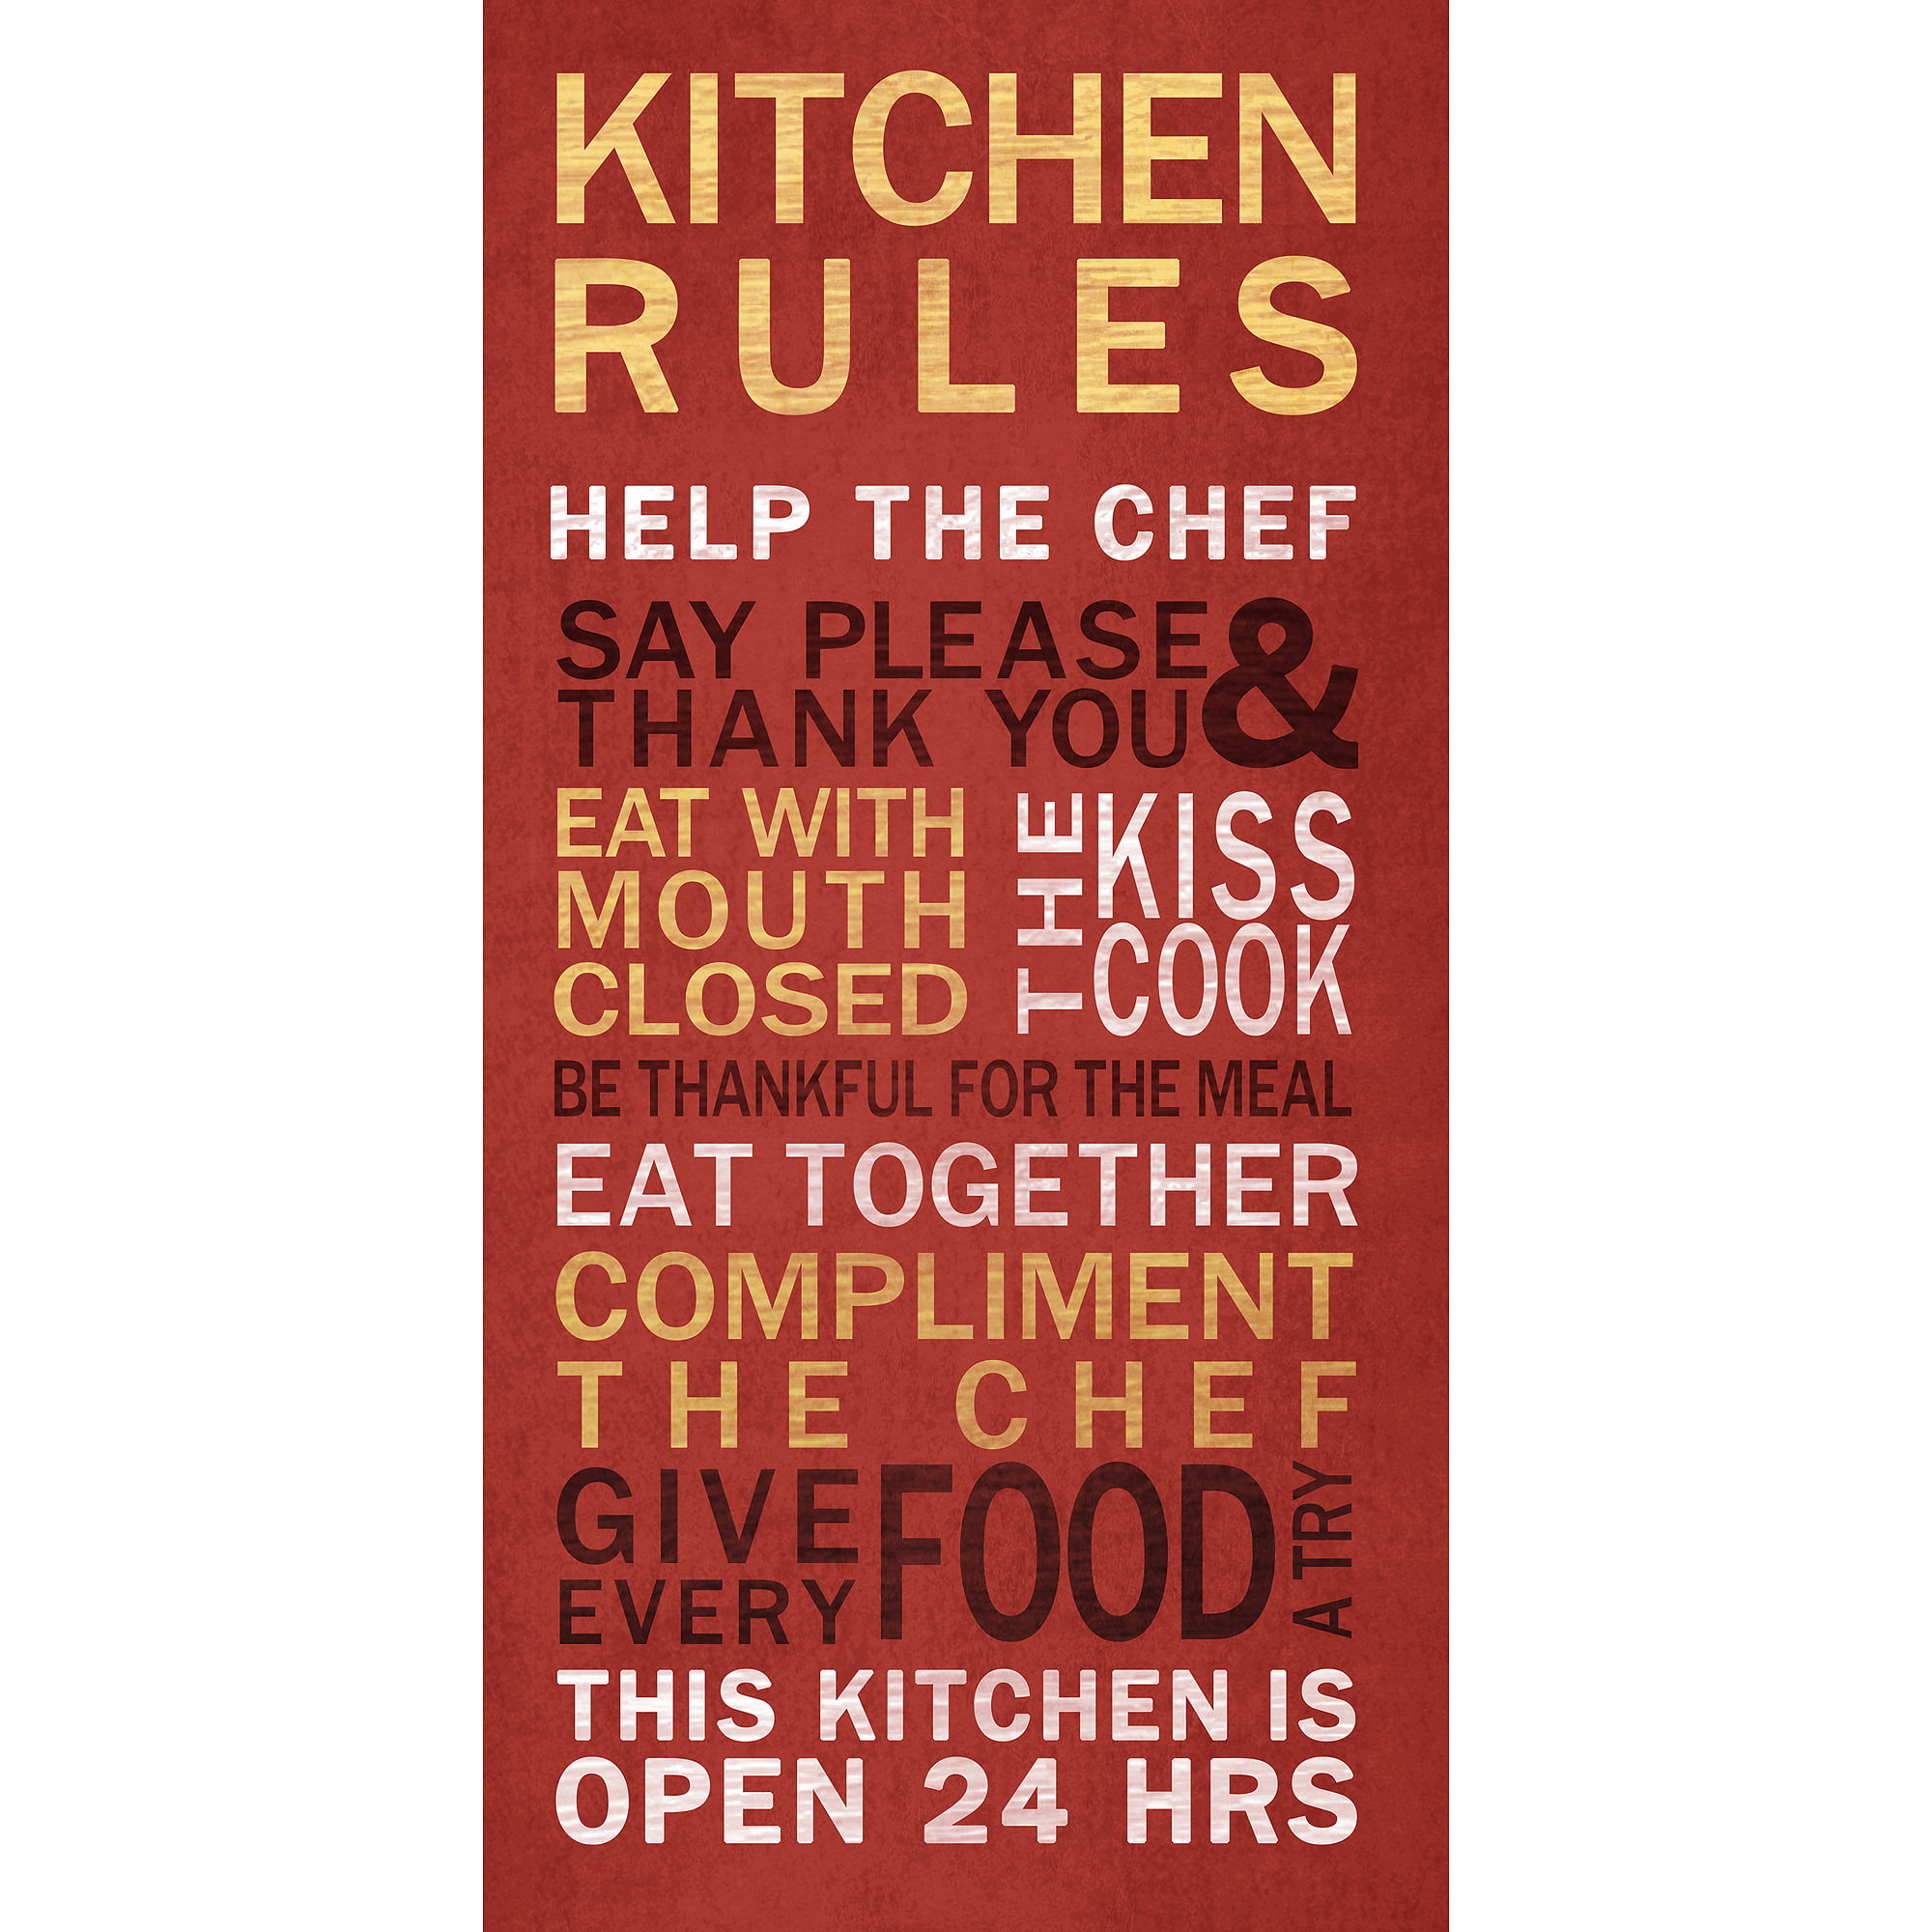 Kitchen Rules Wall Artwork by Pro Tour Memorabilia